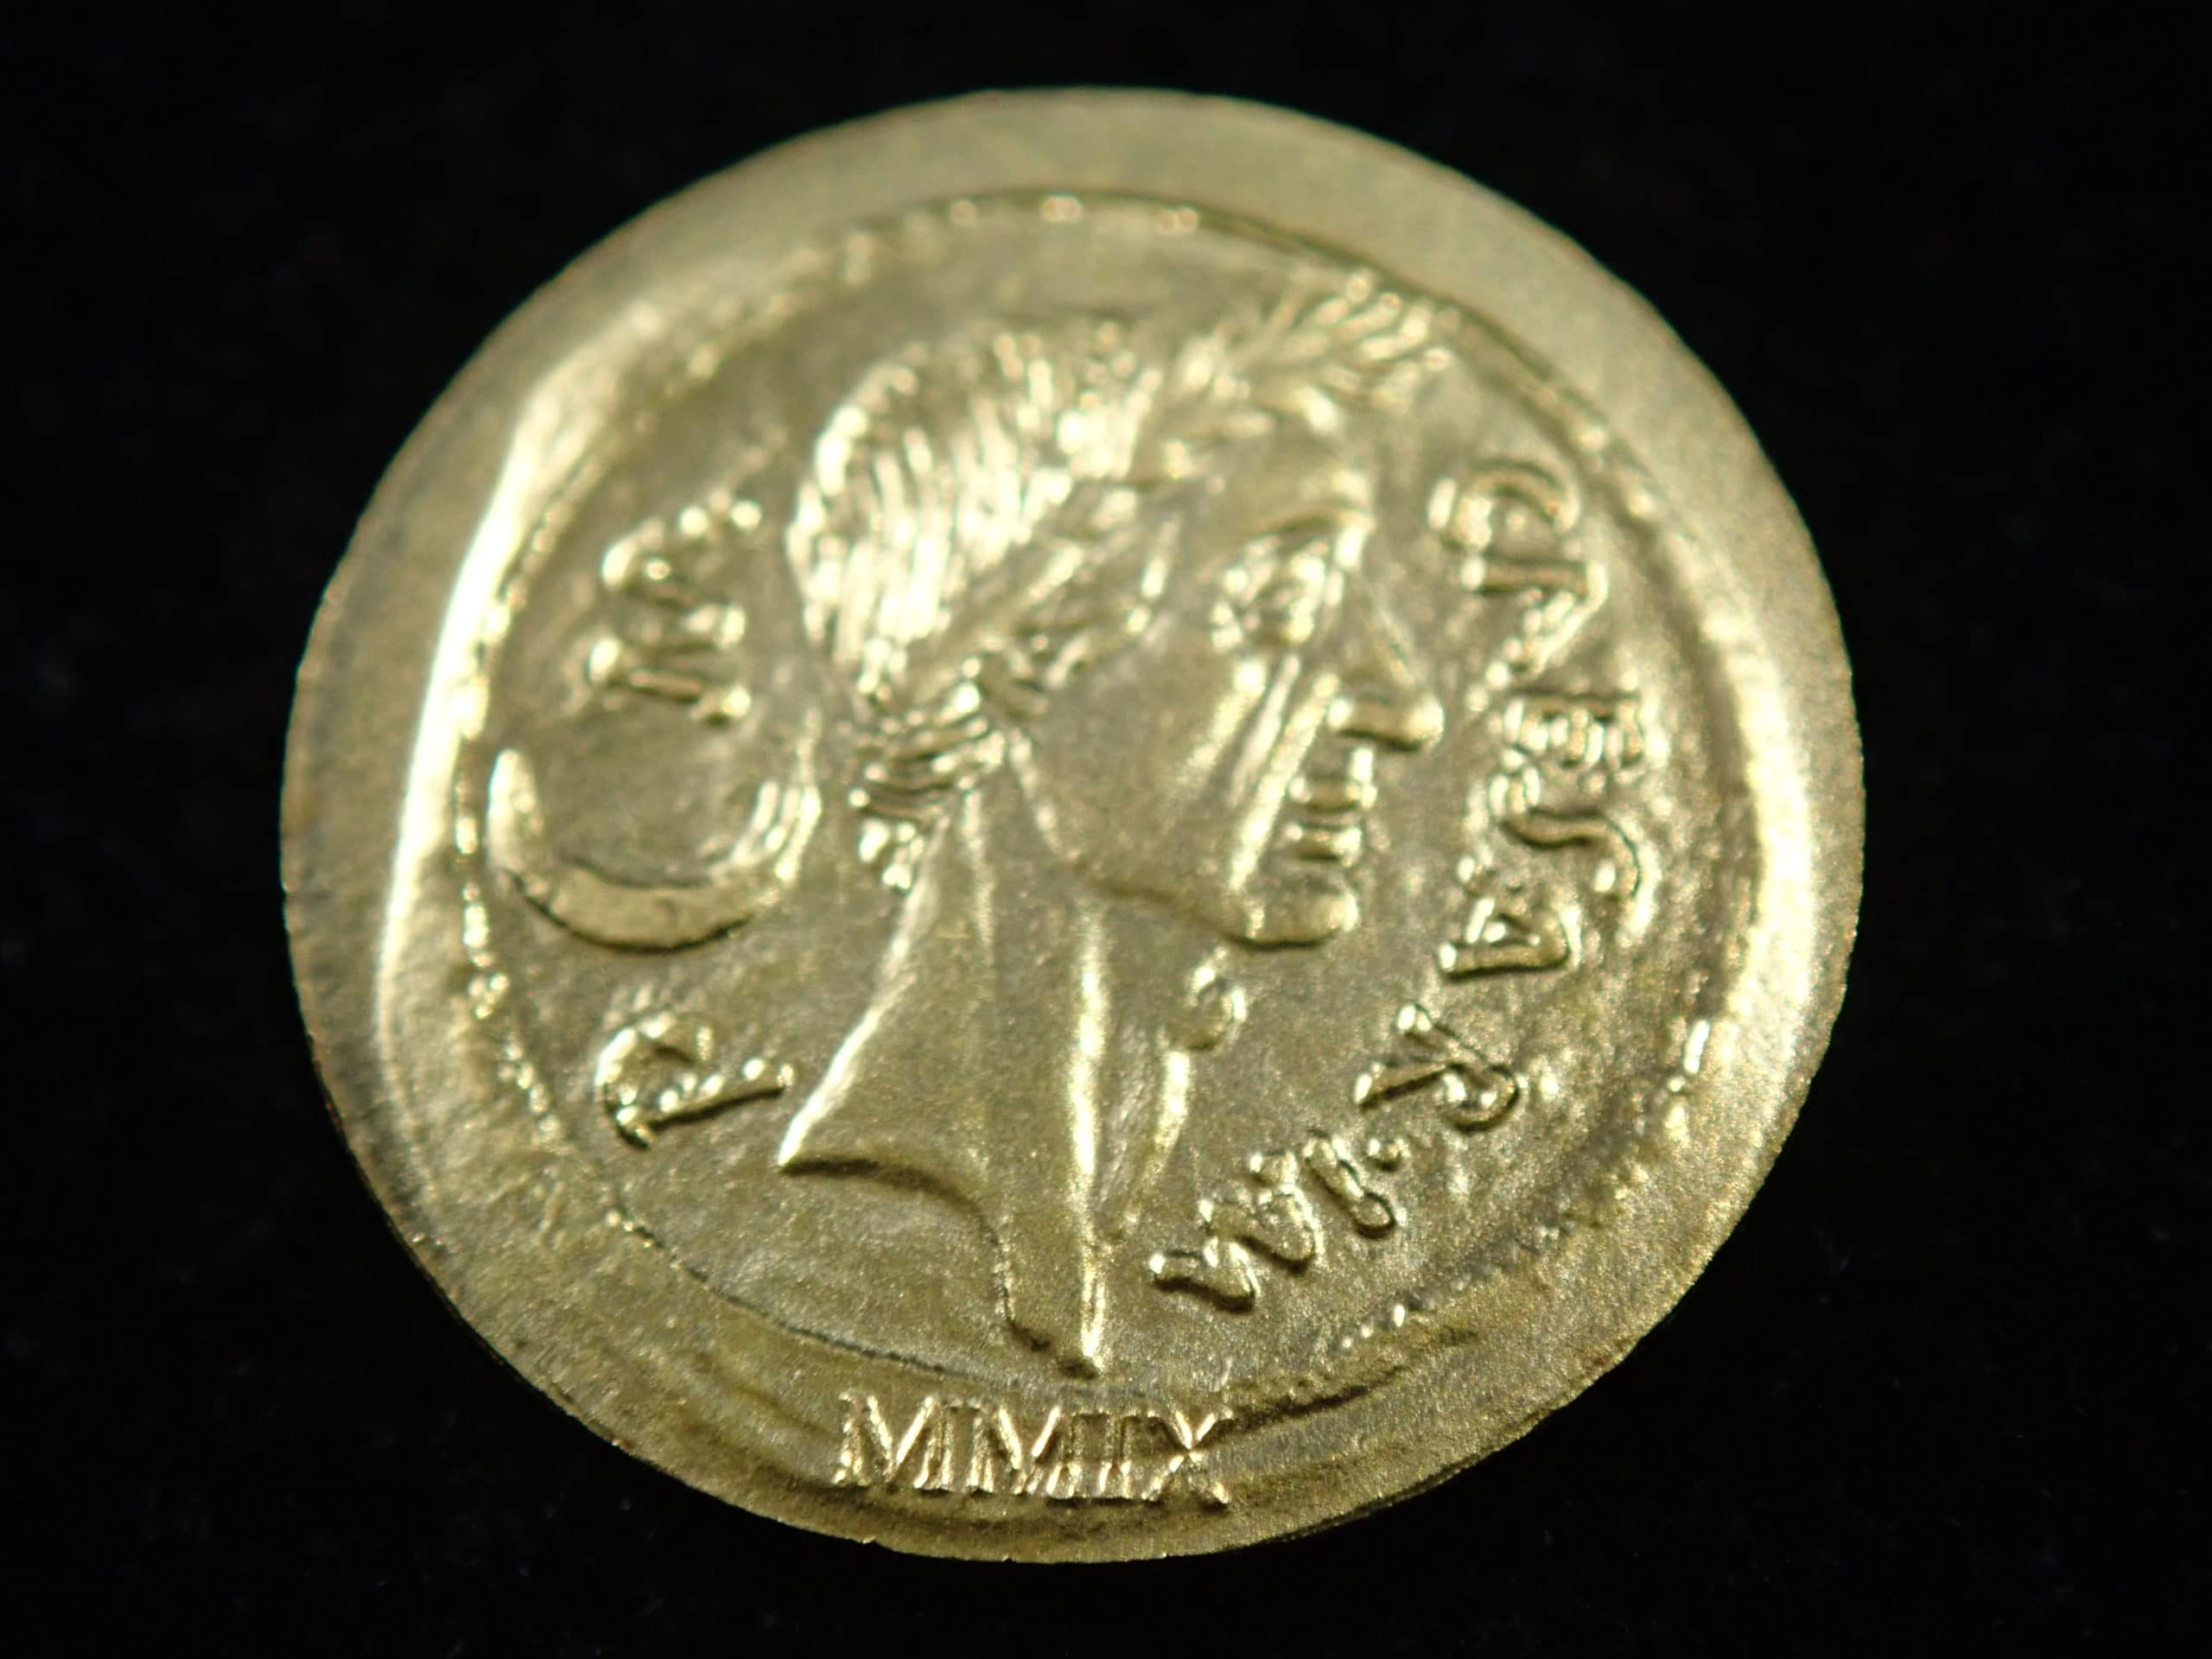 2009 $1 Roman Empire Series .999 24k Gold 0.5grams